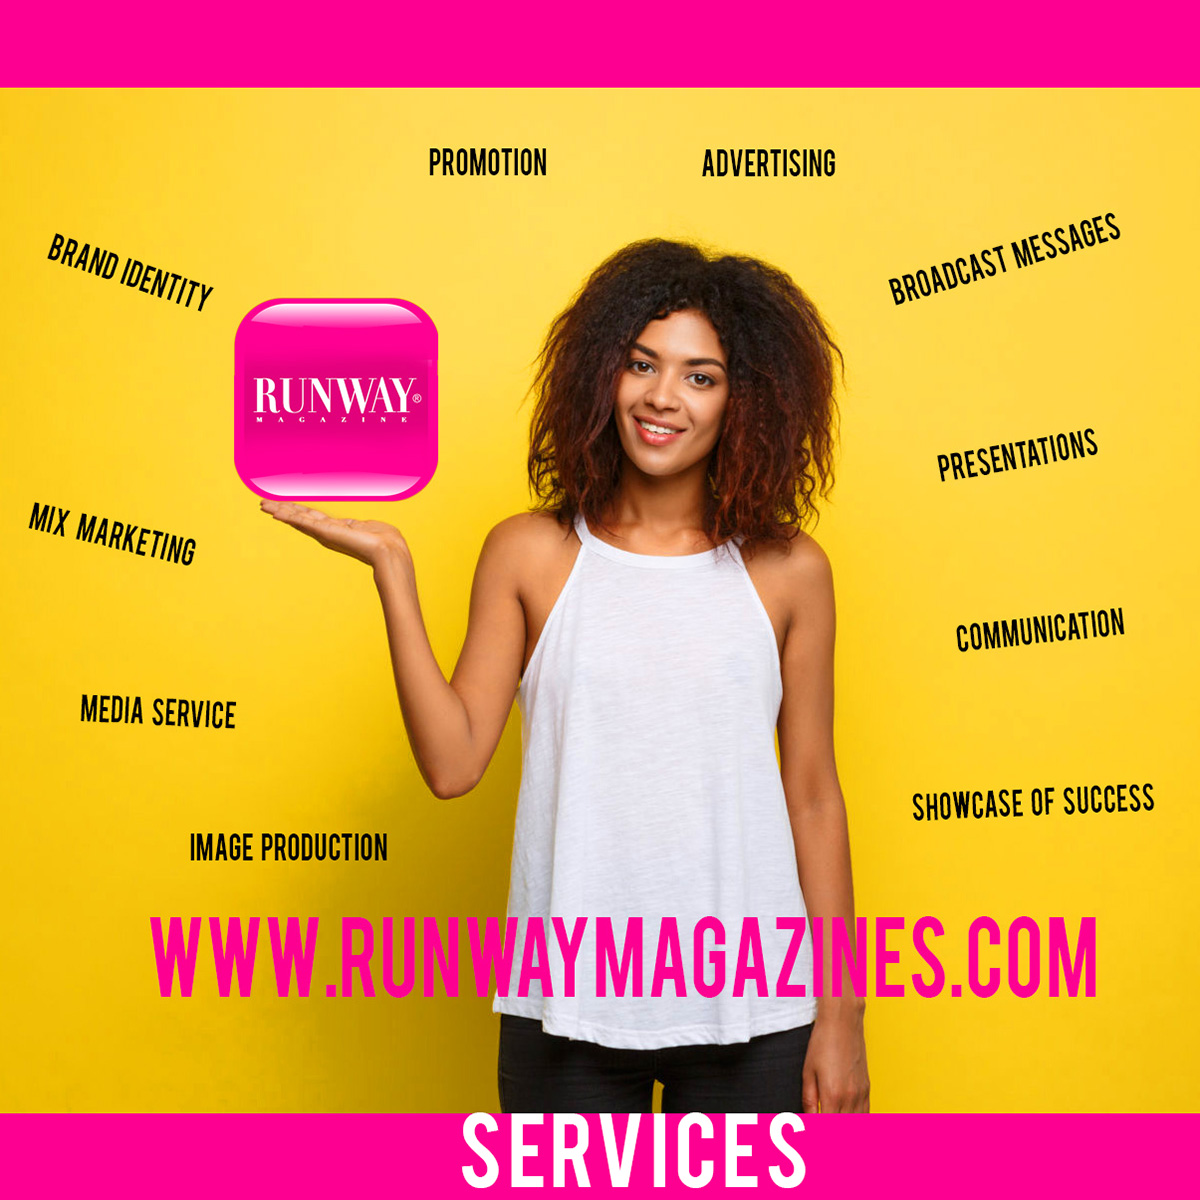 RUNWAY MAGAZINE ® Official - House of Marketing Mix